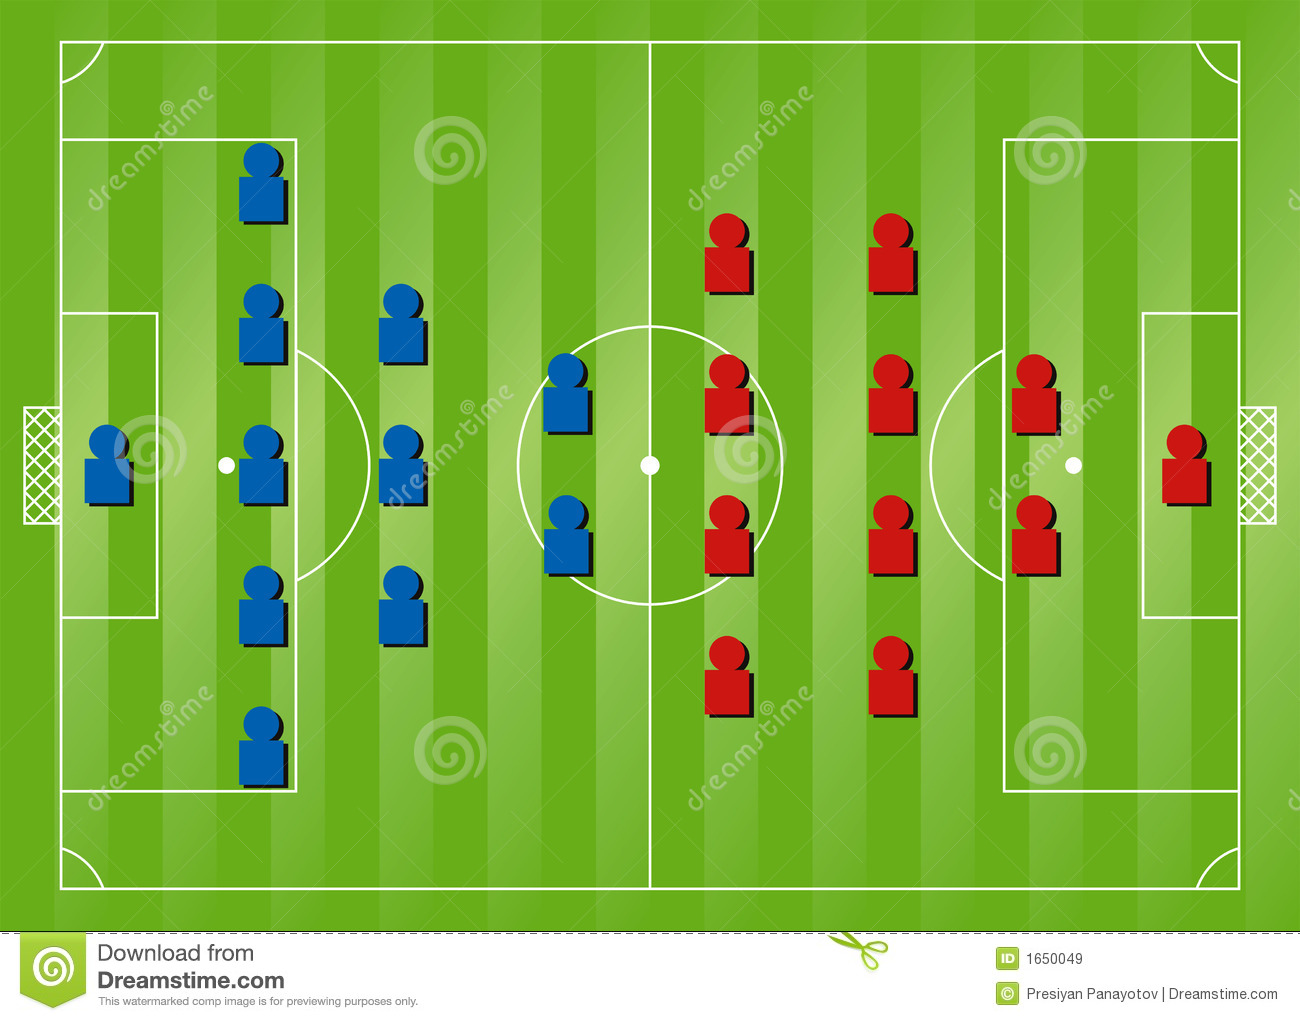 Soccer formation tactics stock illustration  Illustration of soccer